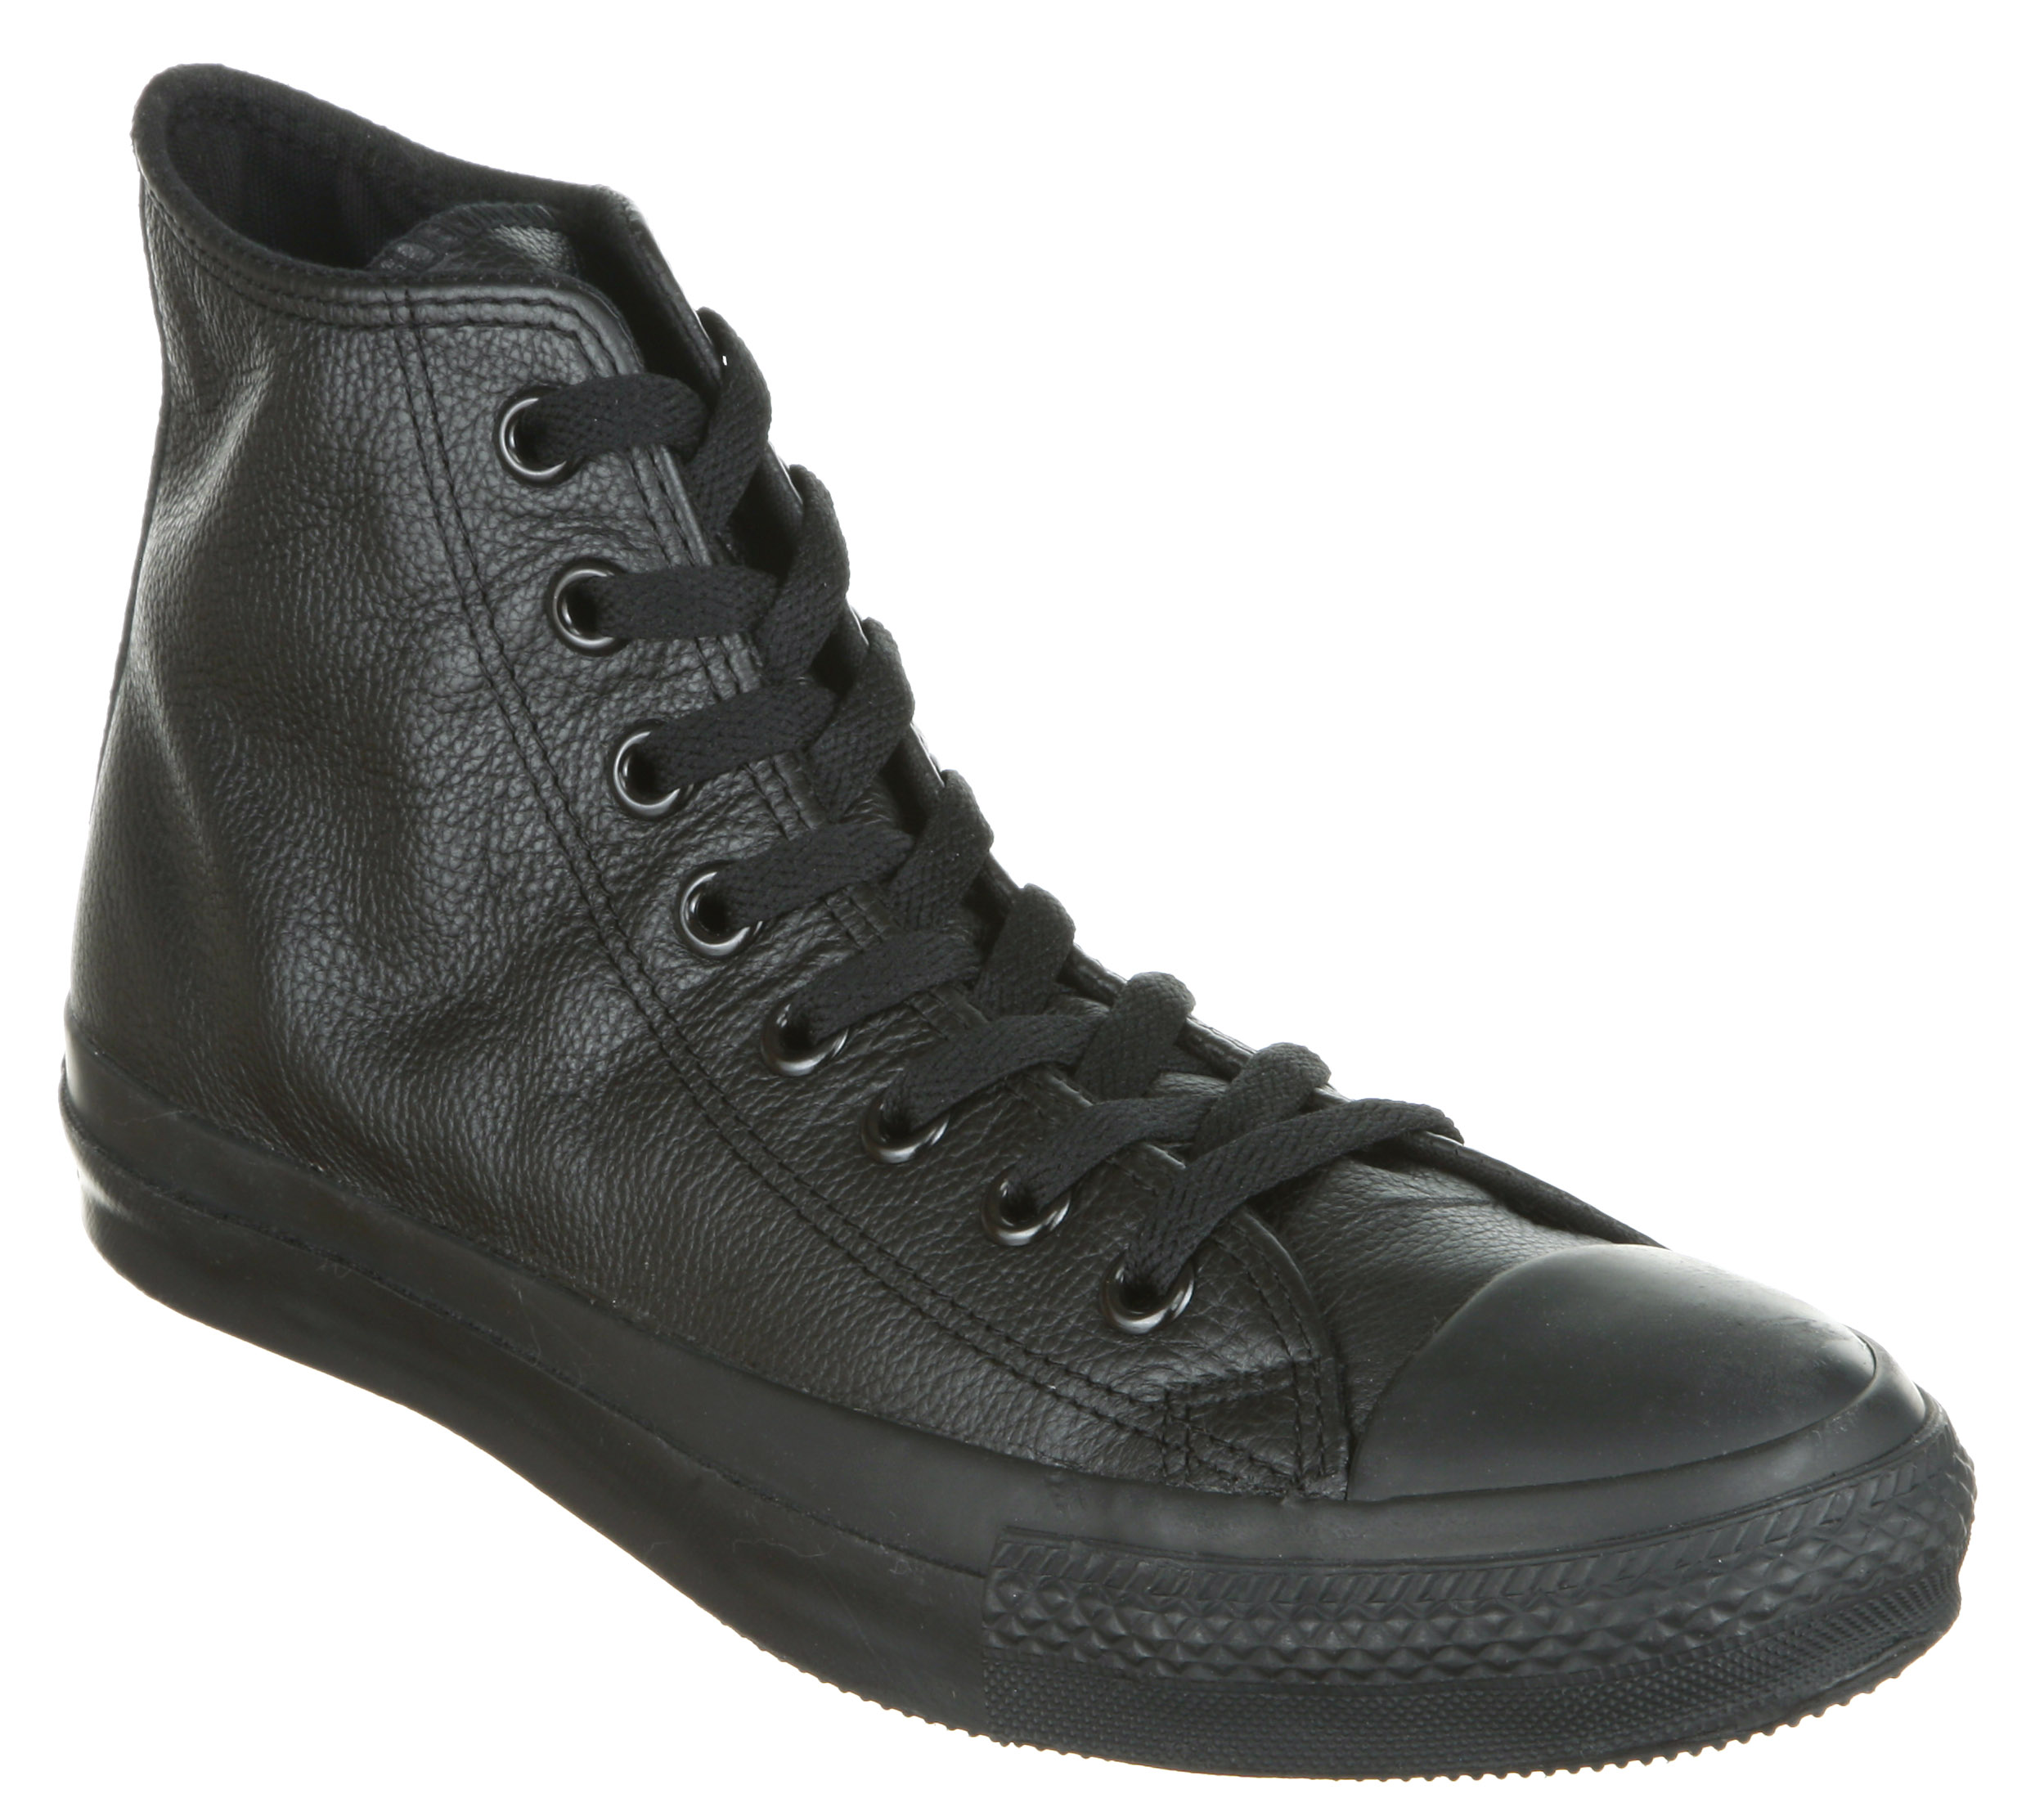 Converse-All-Star-Leather-Hi-Black-Mono-Trainers-Shoes-Unisex-Sports